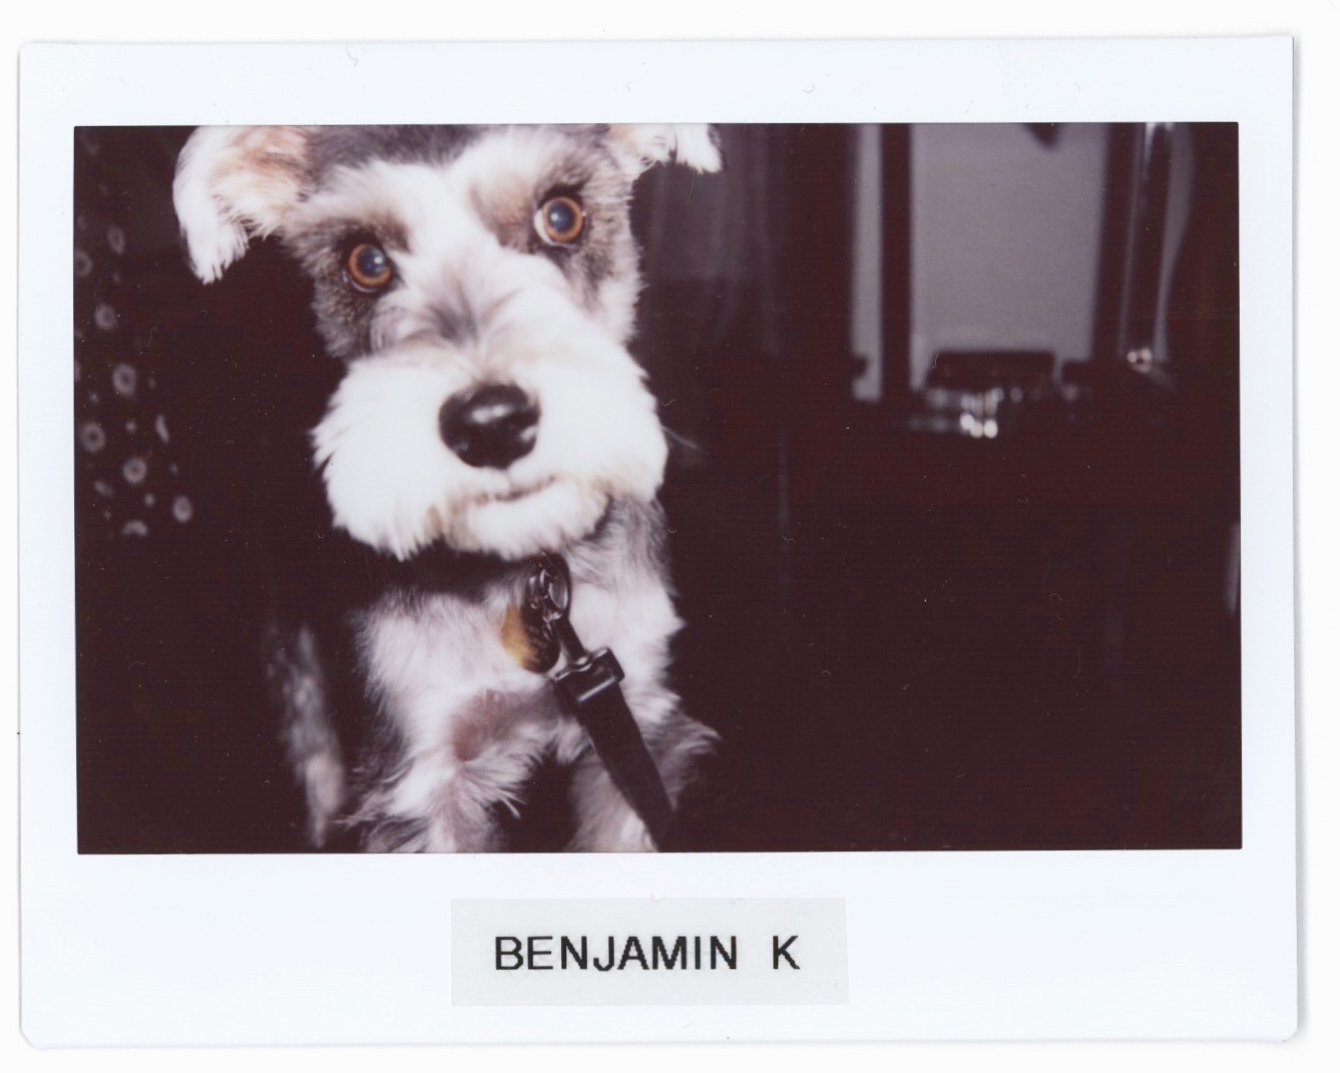 My dog-son, Benji  @BENJIKLMNOP